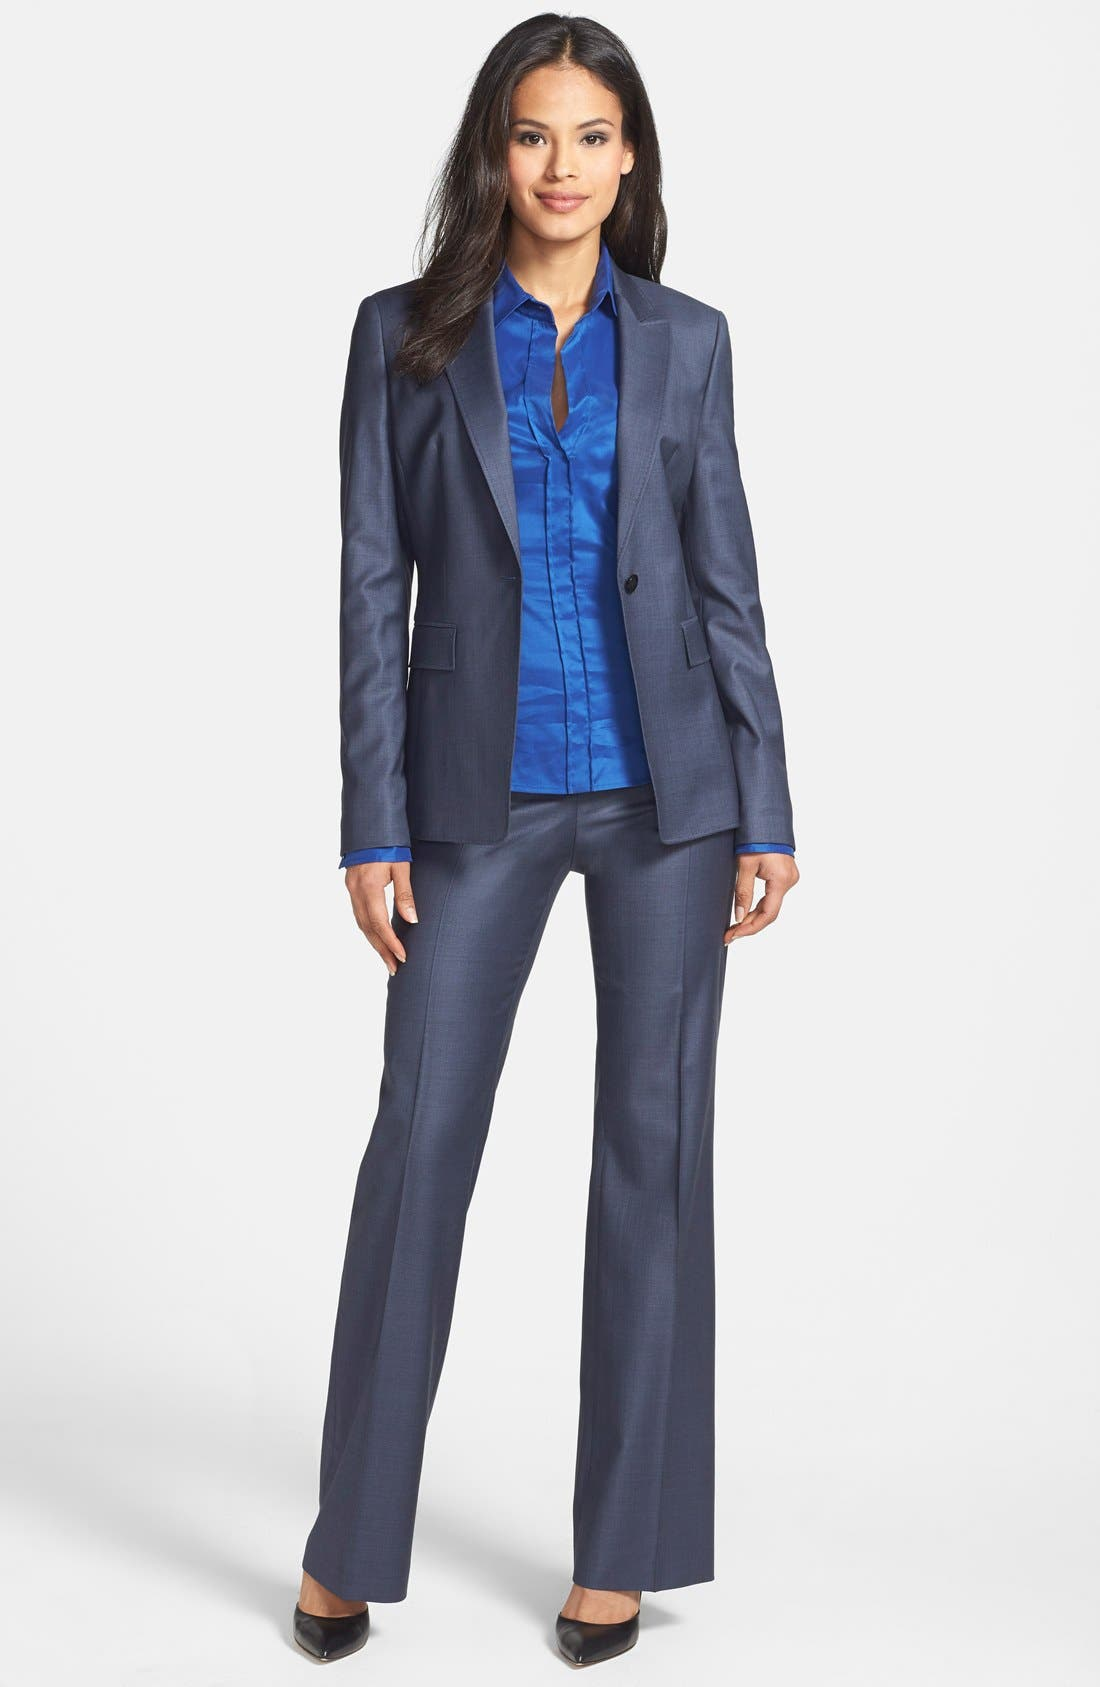 'Temuna' Wool Blend Suiting Trousers,                             Alternate thumbnail 4, color,                             Electric Blue Fantasy Melange